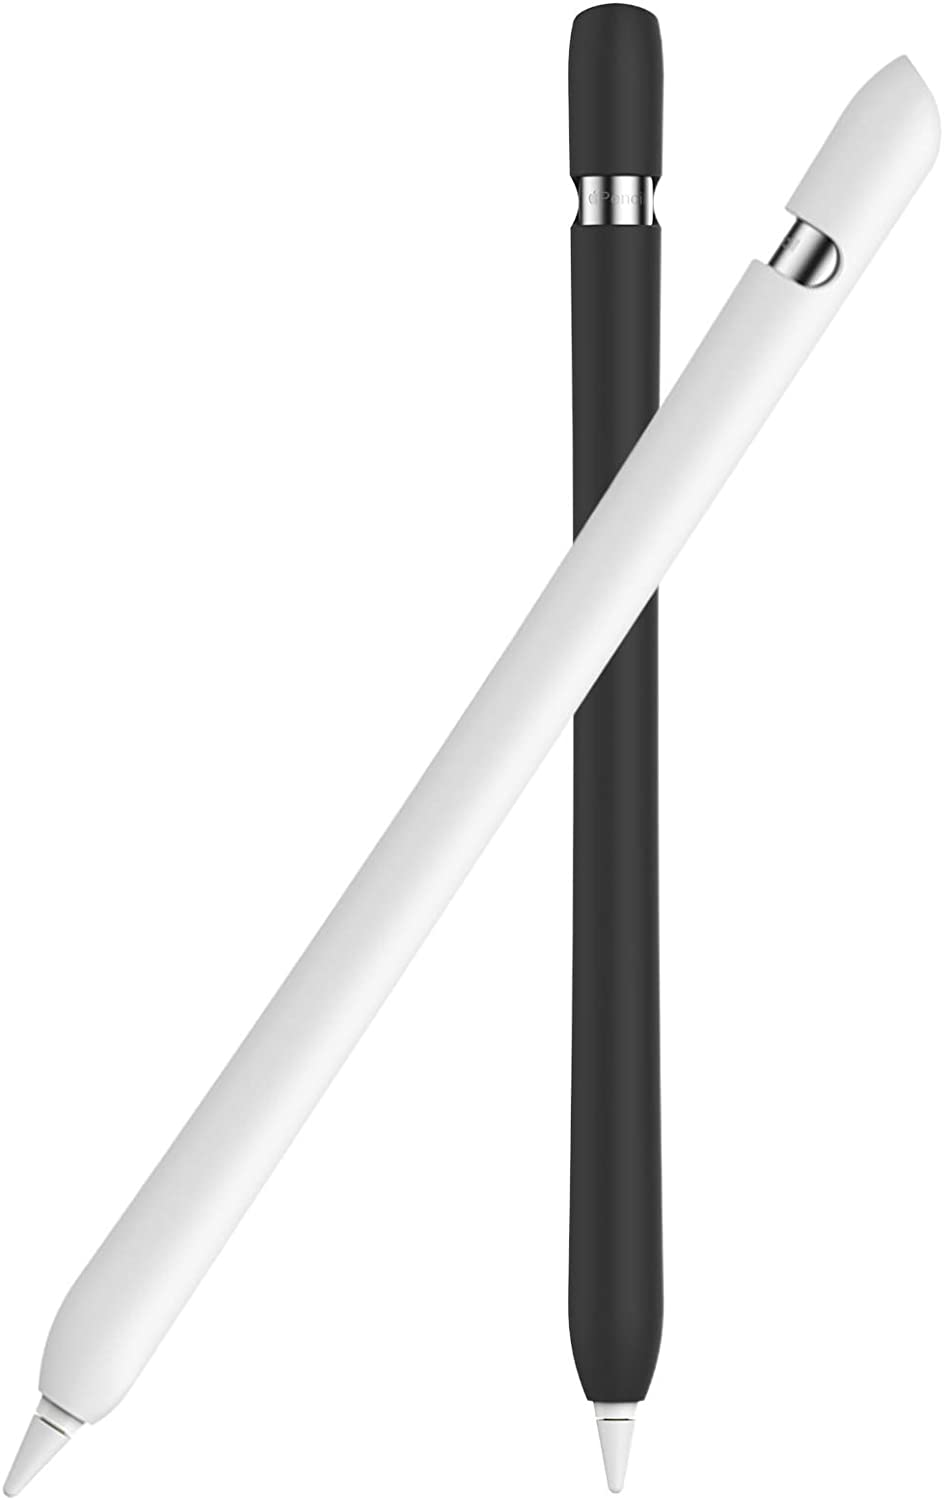 Delidigi 2 Pack Case for Apple Pencil 1st Gen, Soft Silicone Sleeve Cover Accessories Compatible with Apple Pencil 1st Generation(2 Pack, Black+White)